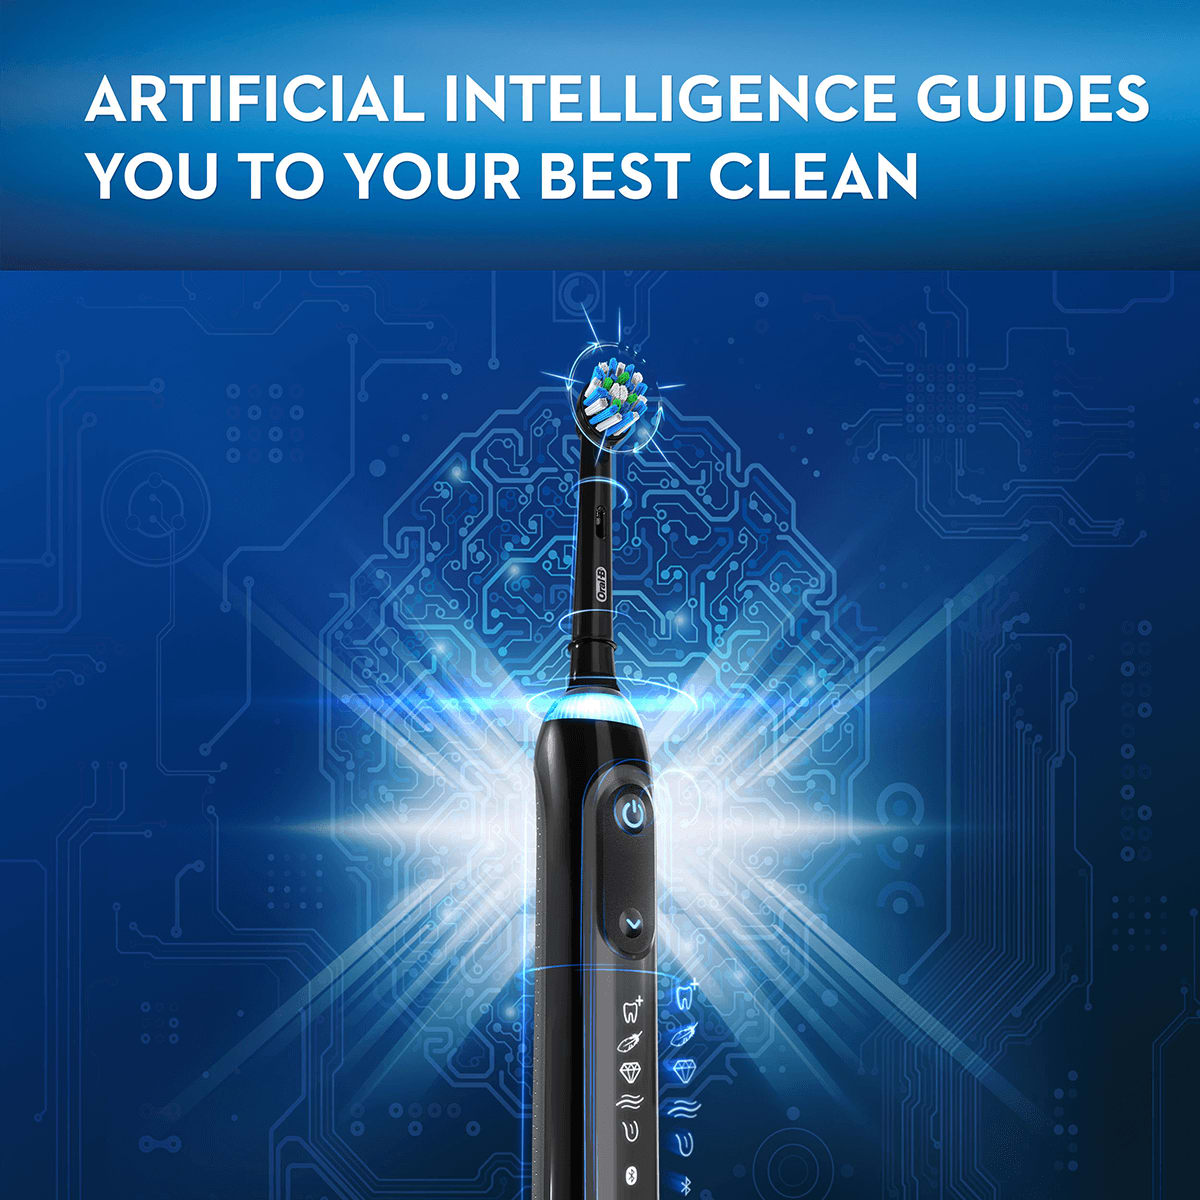 artificial intelligence guides you to your best clean